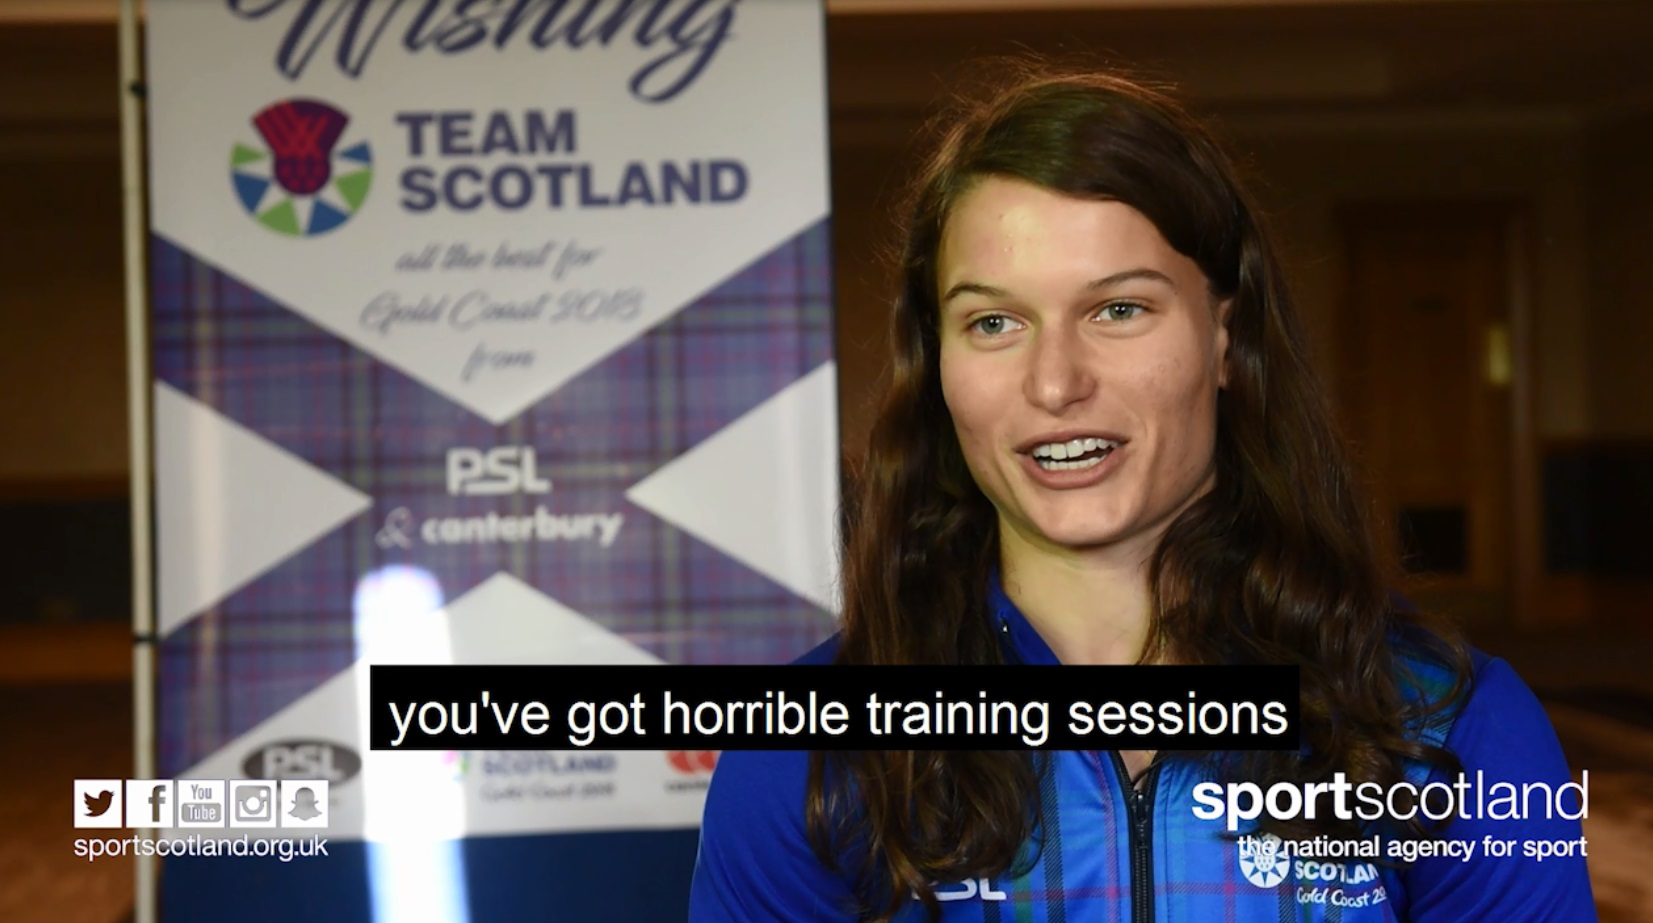 Team Scotland on sacrifices #AskAnAthlete